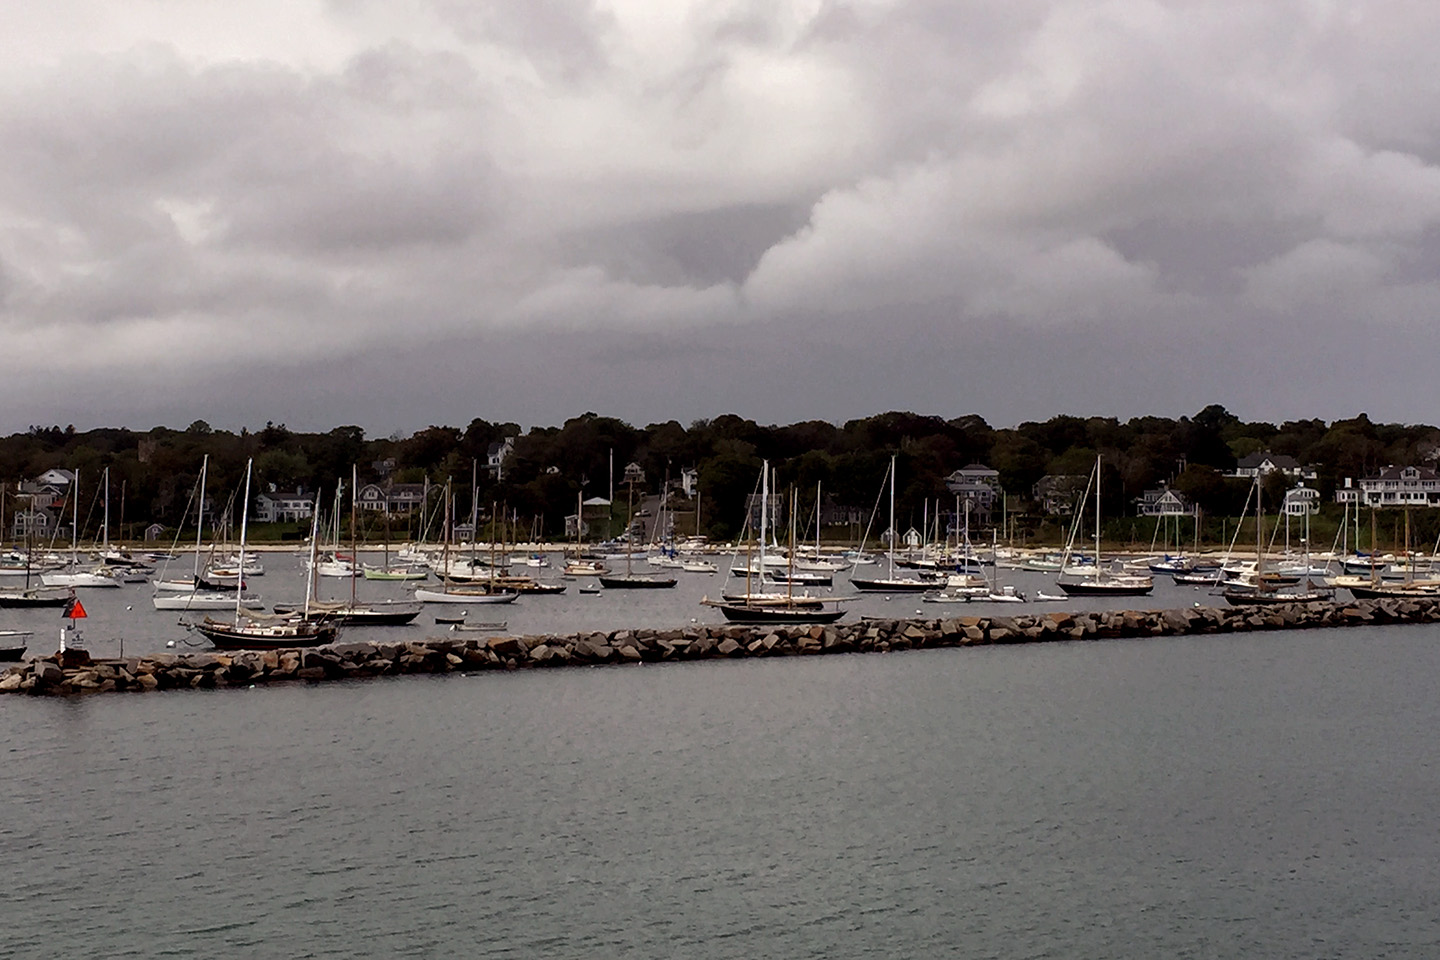 Harbor at Vineyard Haven, Martha's Vineyard, MA